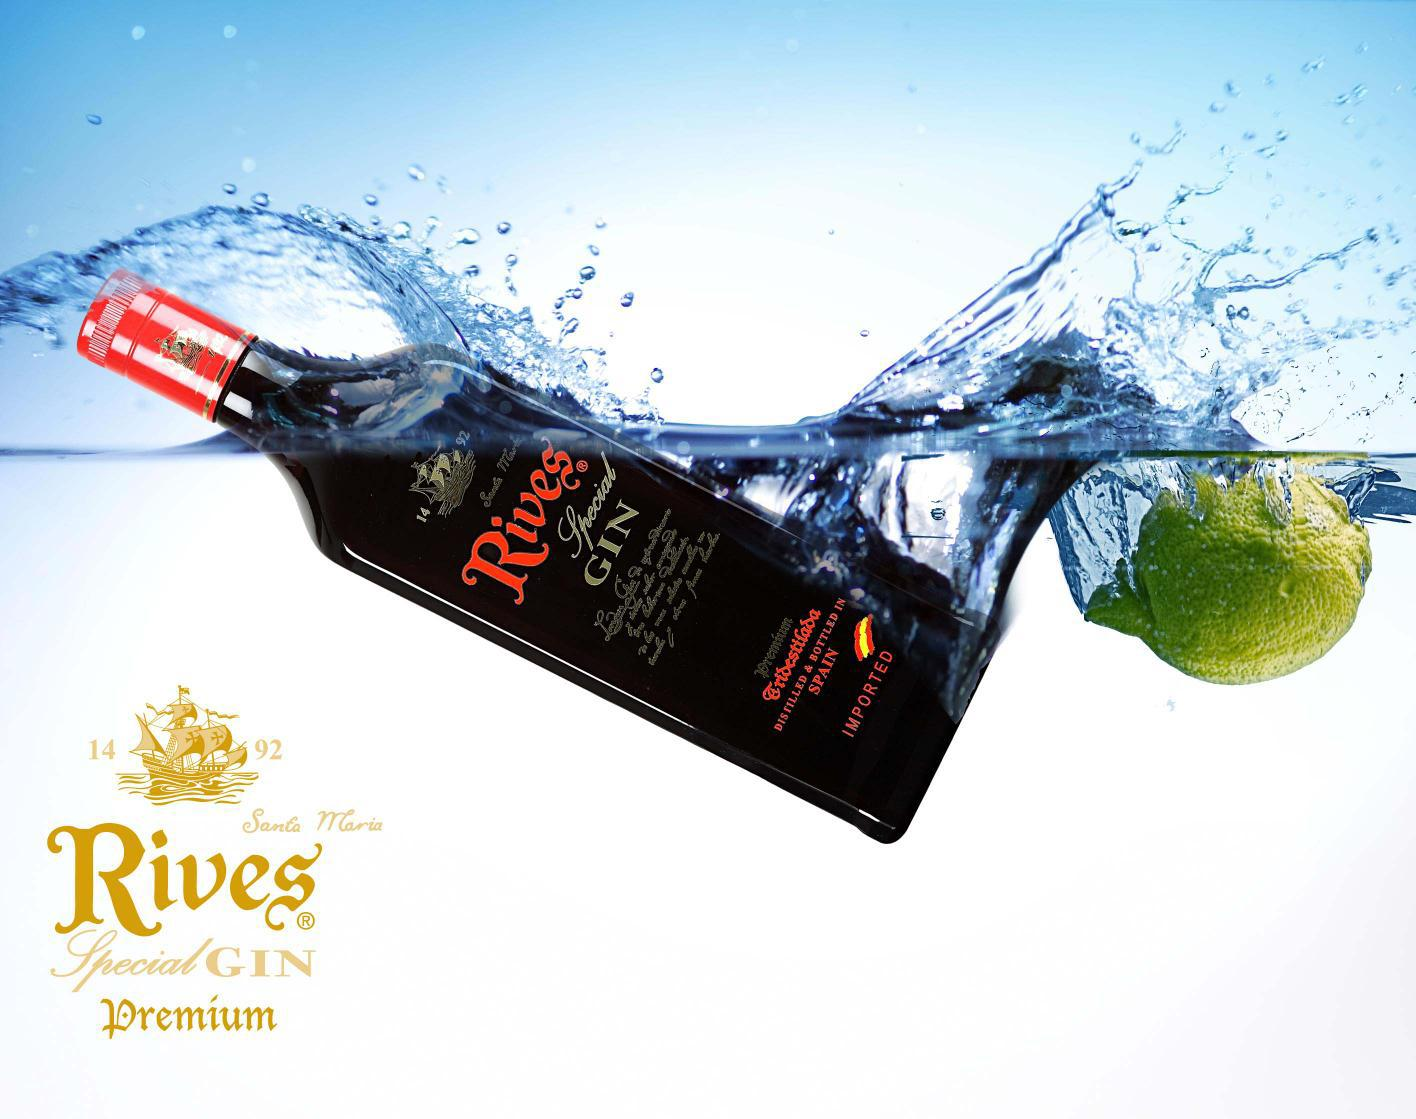 ginebra rives special - giona premium glass